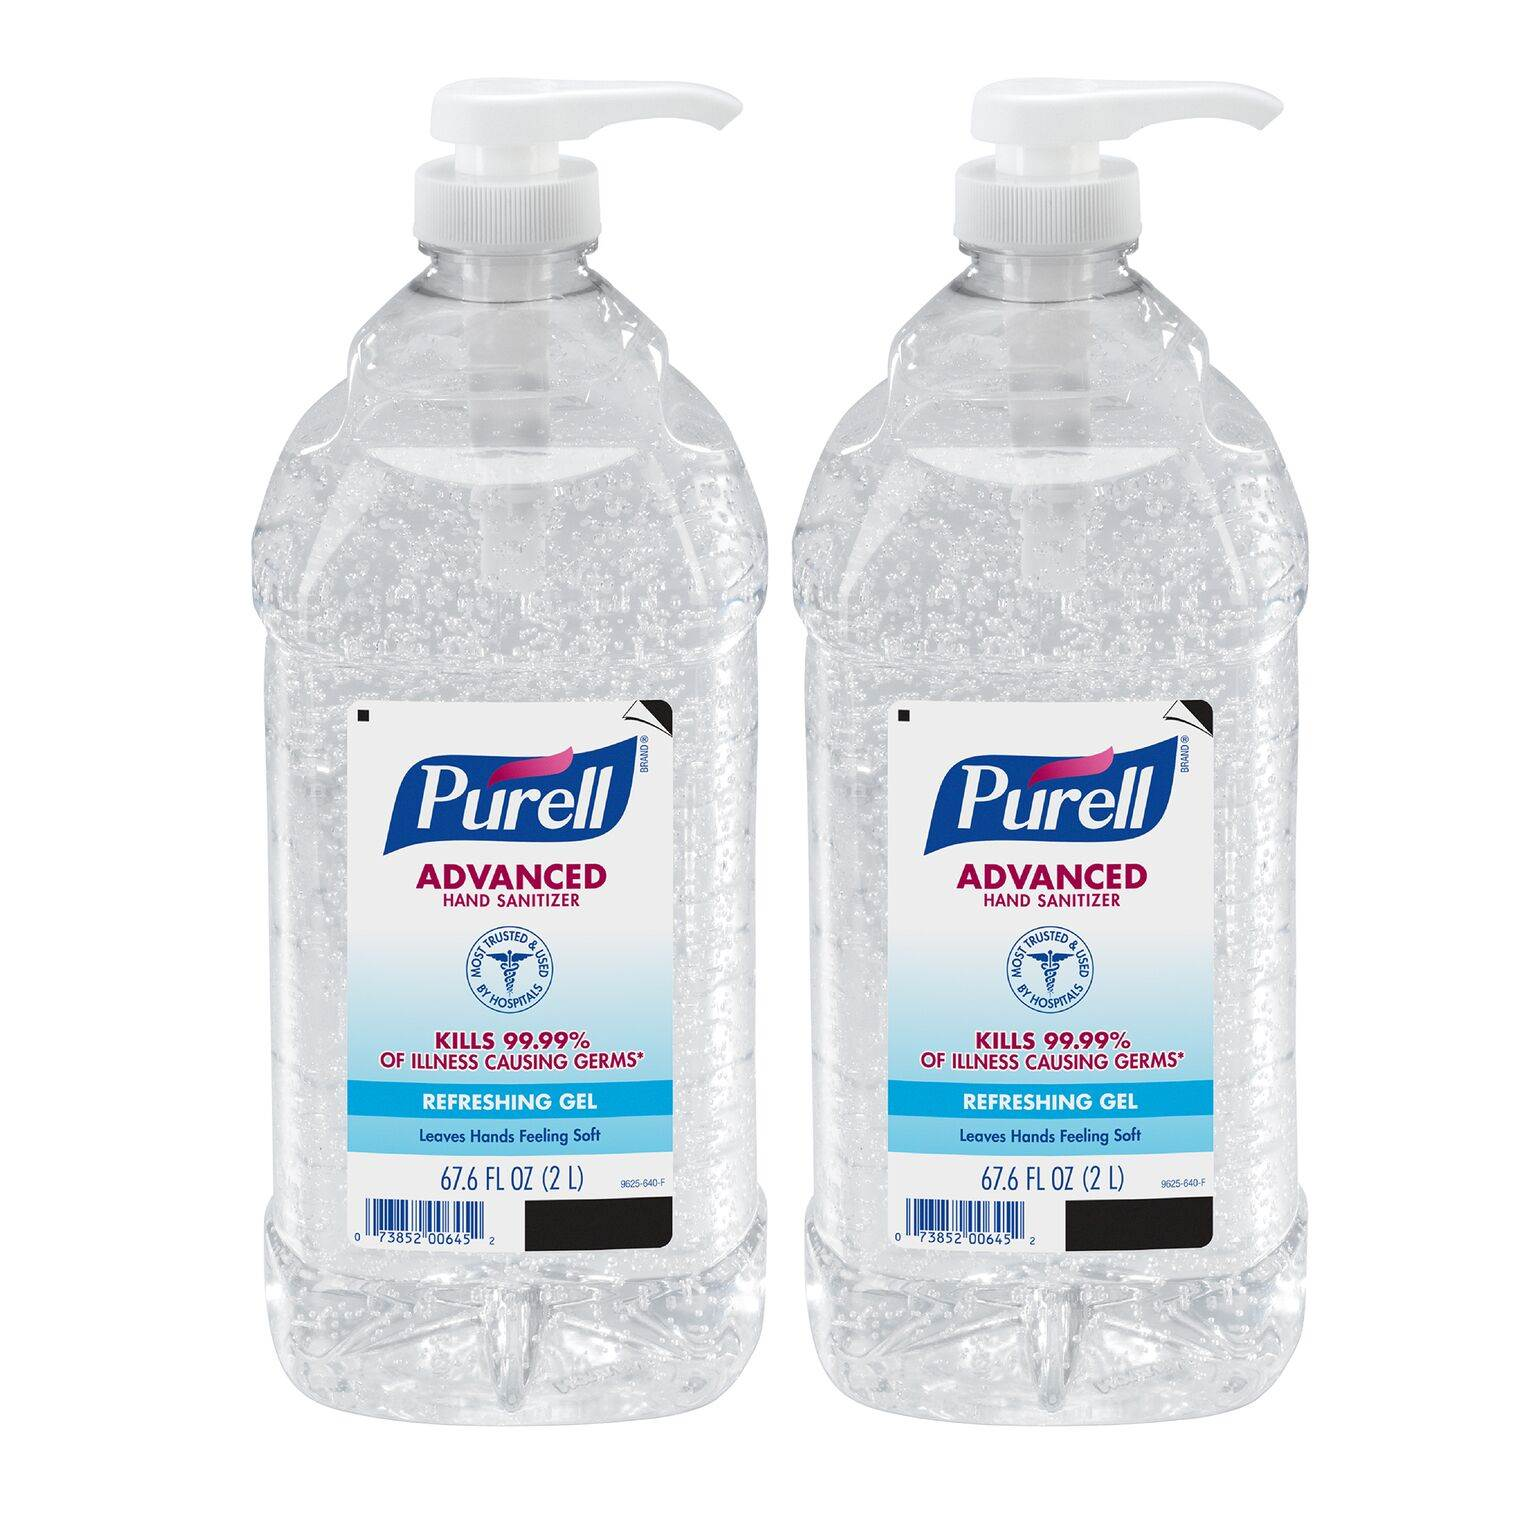 purell-advanced-zep-hand-sanitizer-dispenser-1